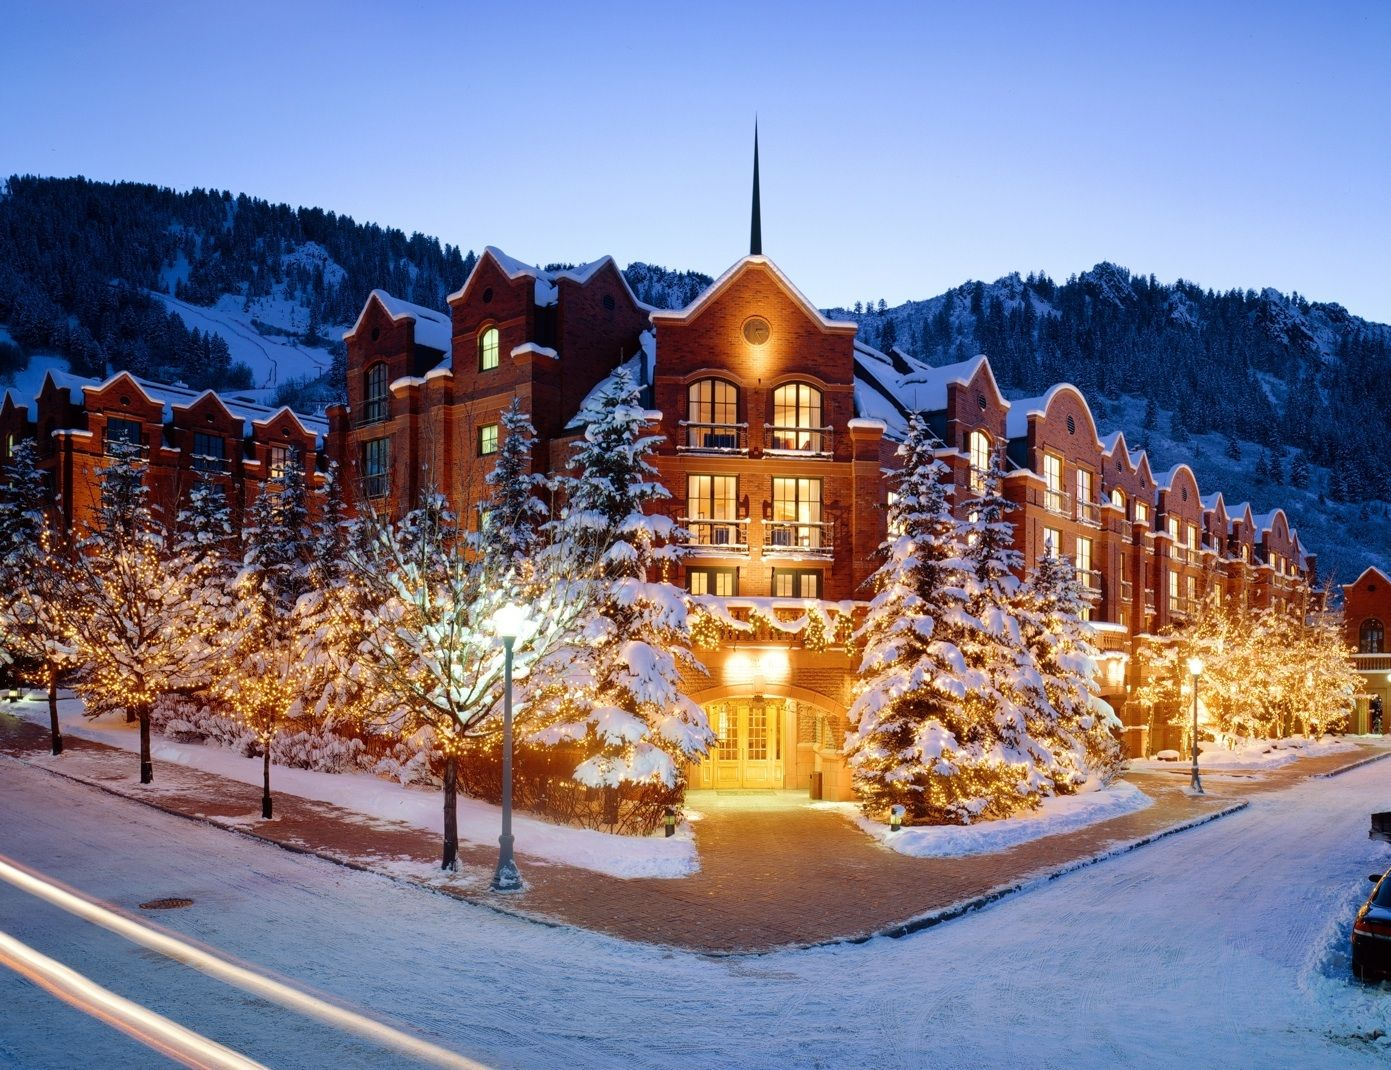 Top 10 Destinations For Adventurous Families With Images Aspen Resort Ski Hotel Best Ski Resorts